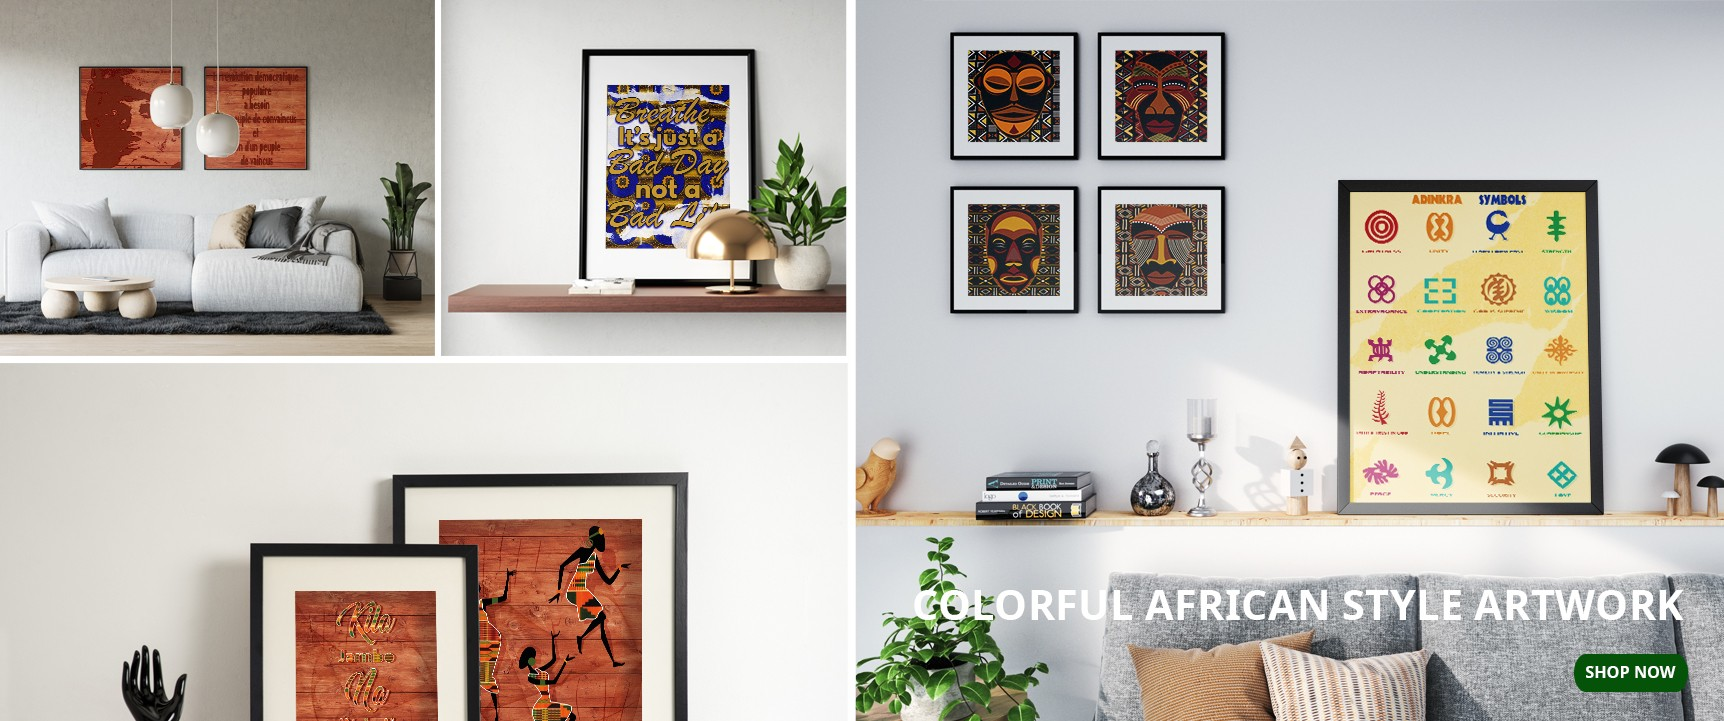 Colorful African style artwork